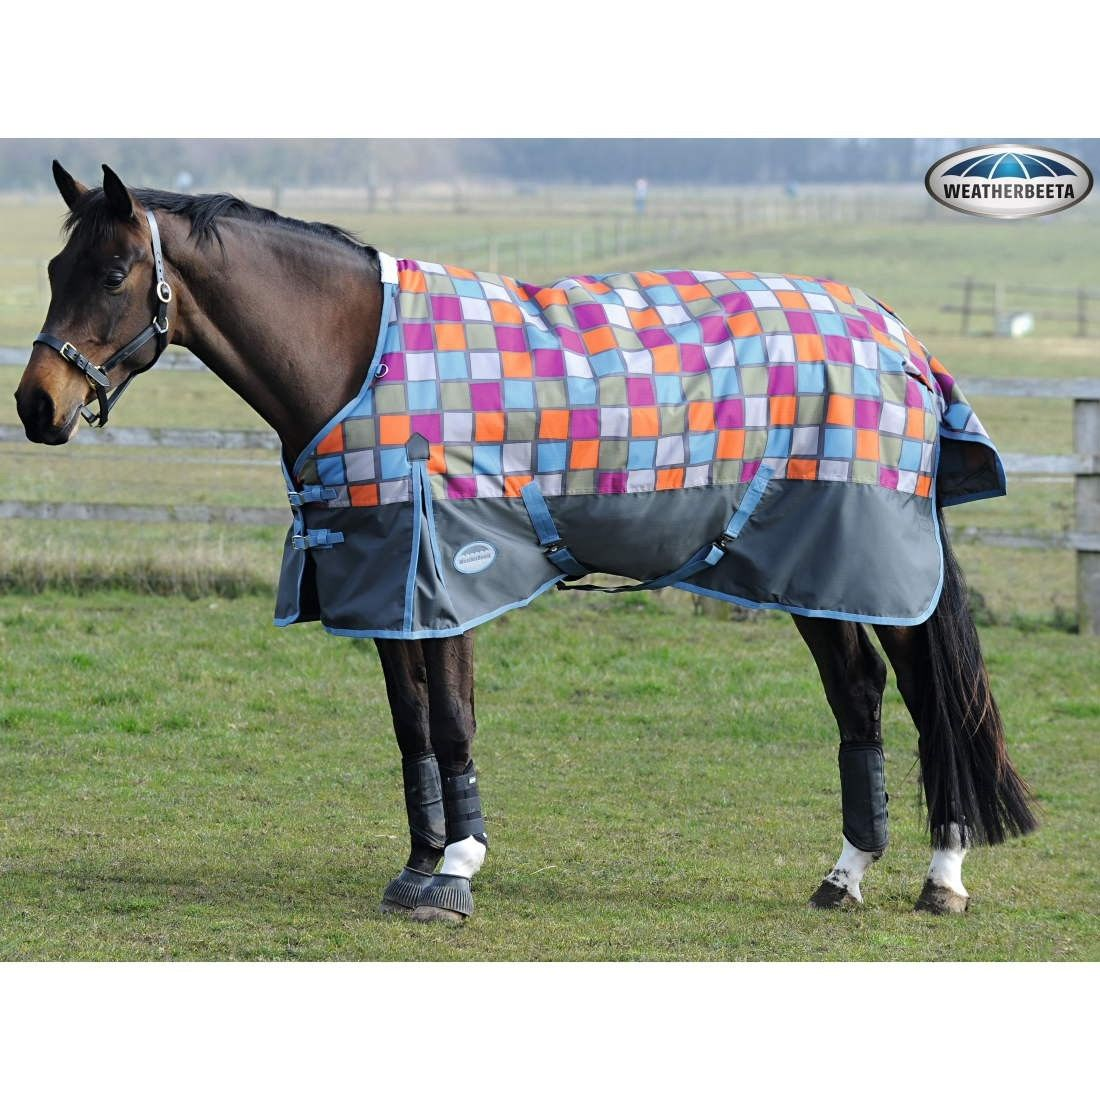 Weatherbeeta Snowman Rug: Weatherbeeta 1200D Medium Weight Standard Neck Turnout Rug